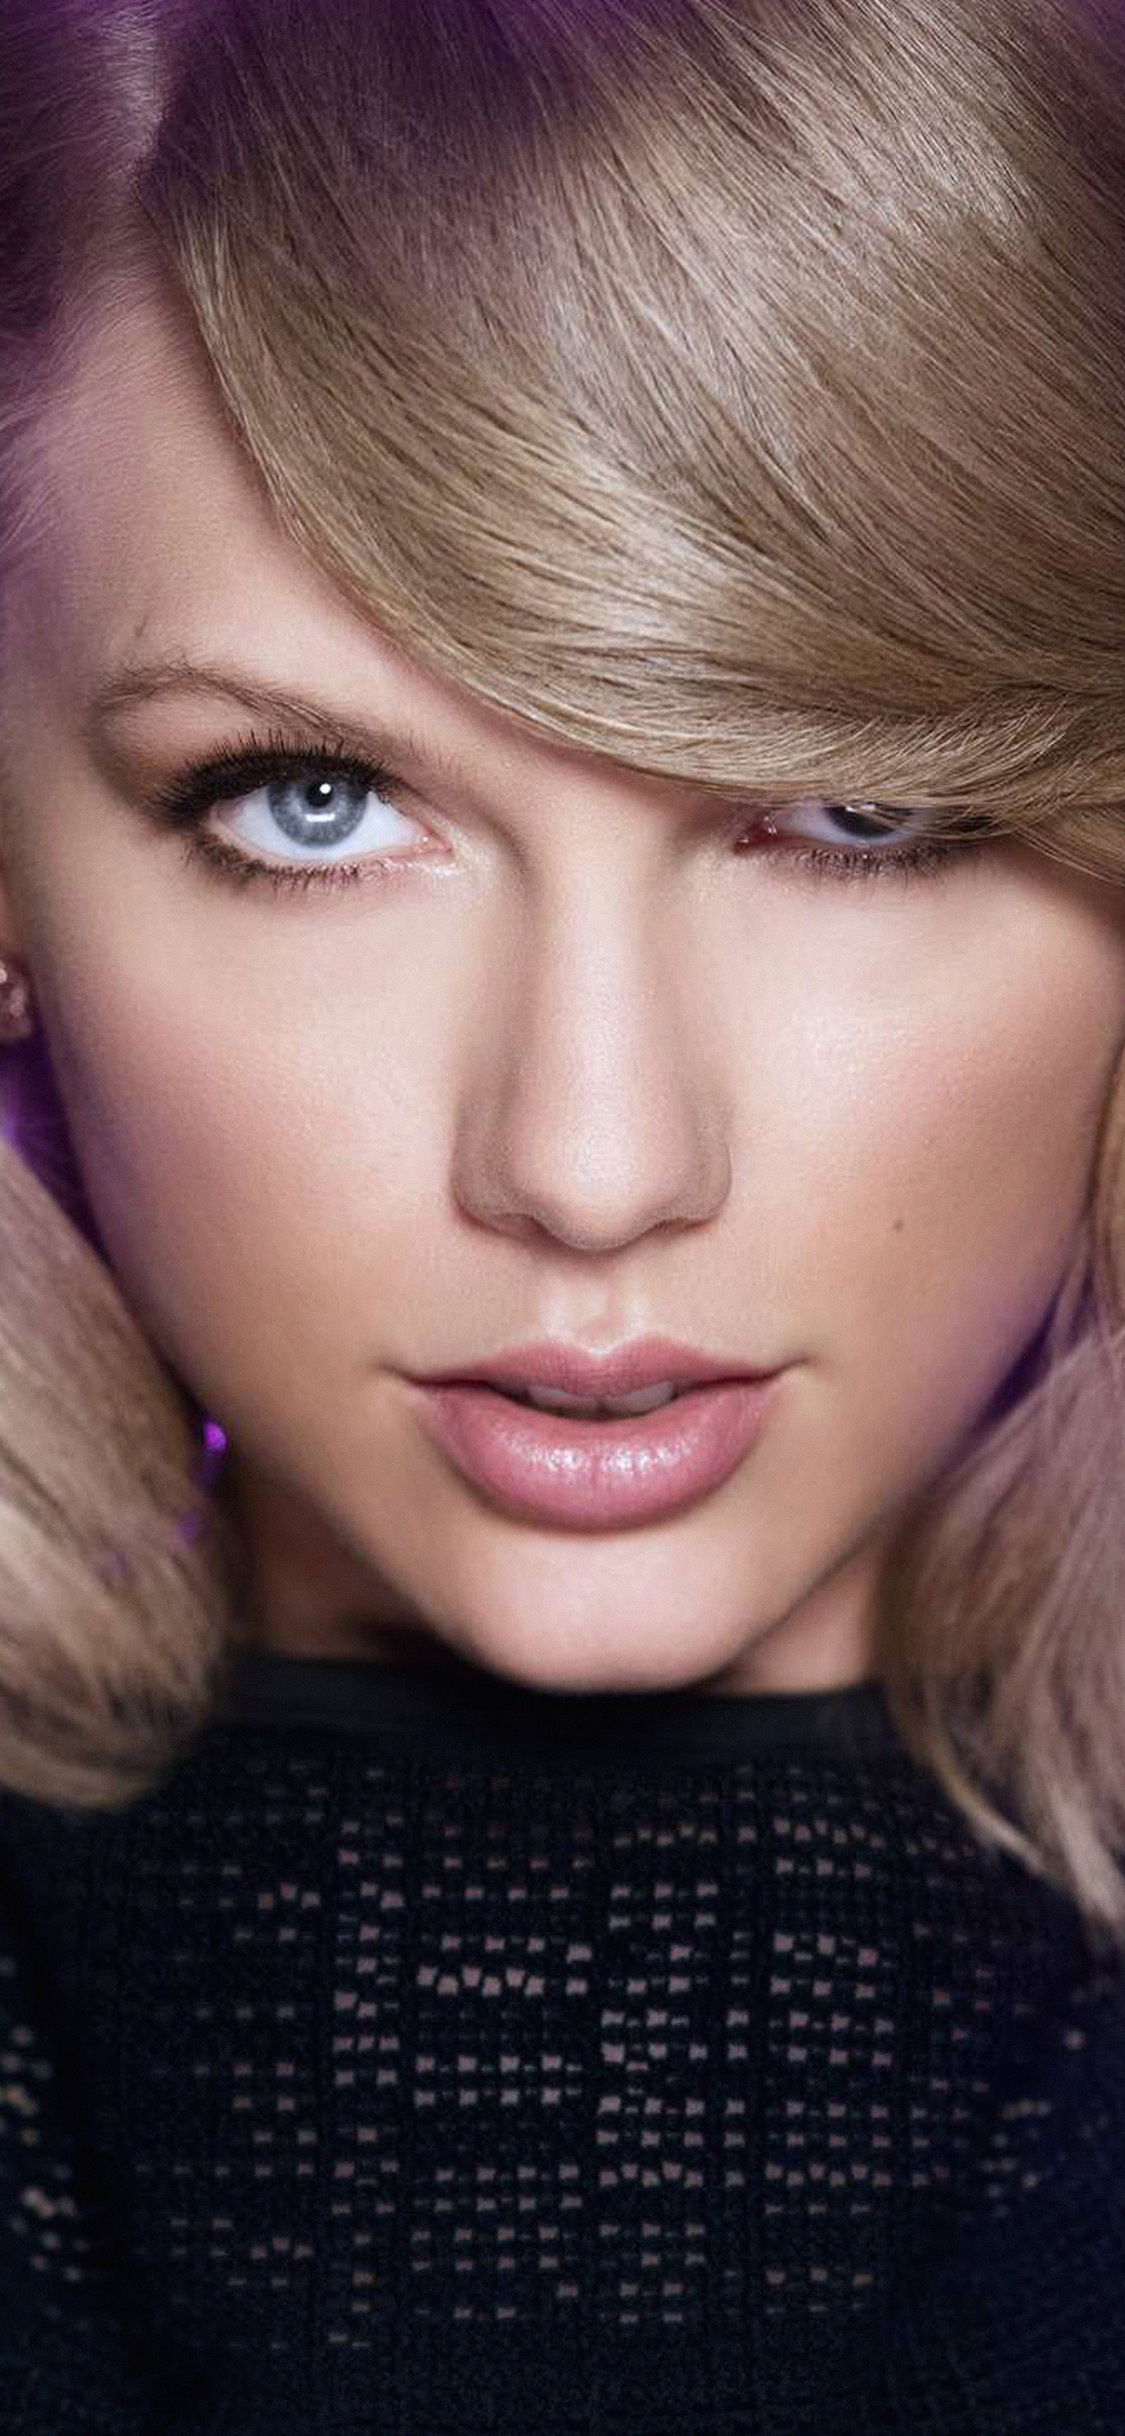 iPhoneXpapers.com-Apple-iPhone-wallpaper-hi53-taylor-swift-face-music-celebrity